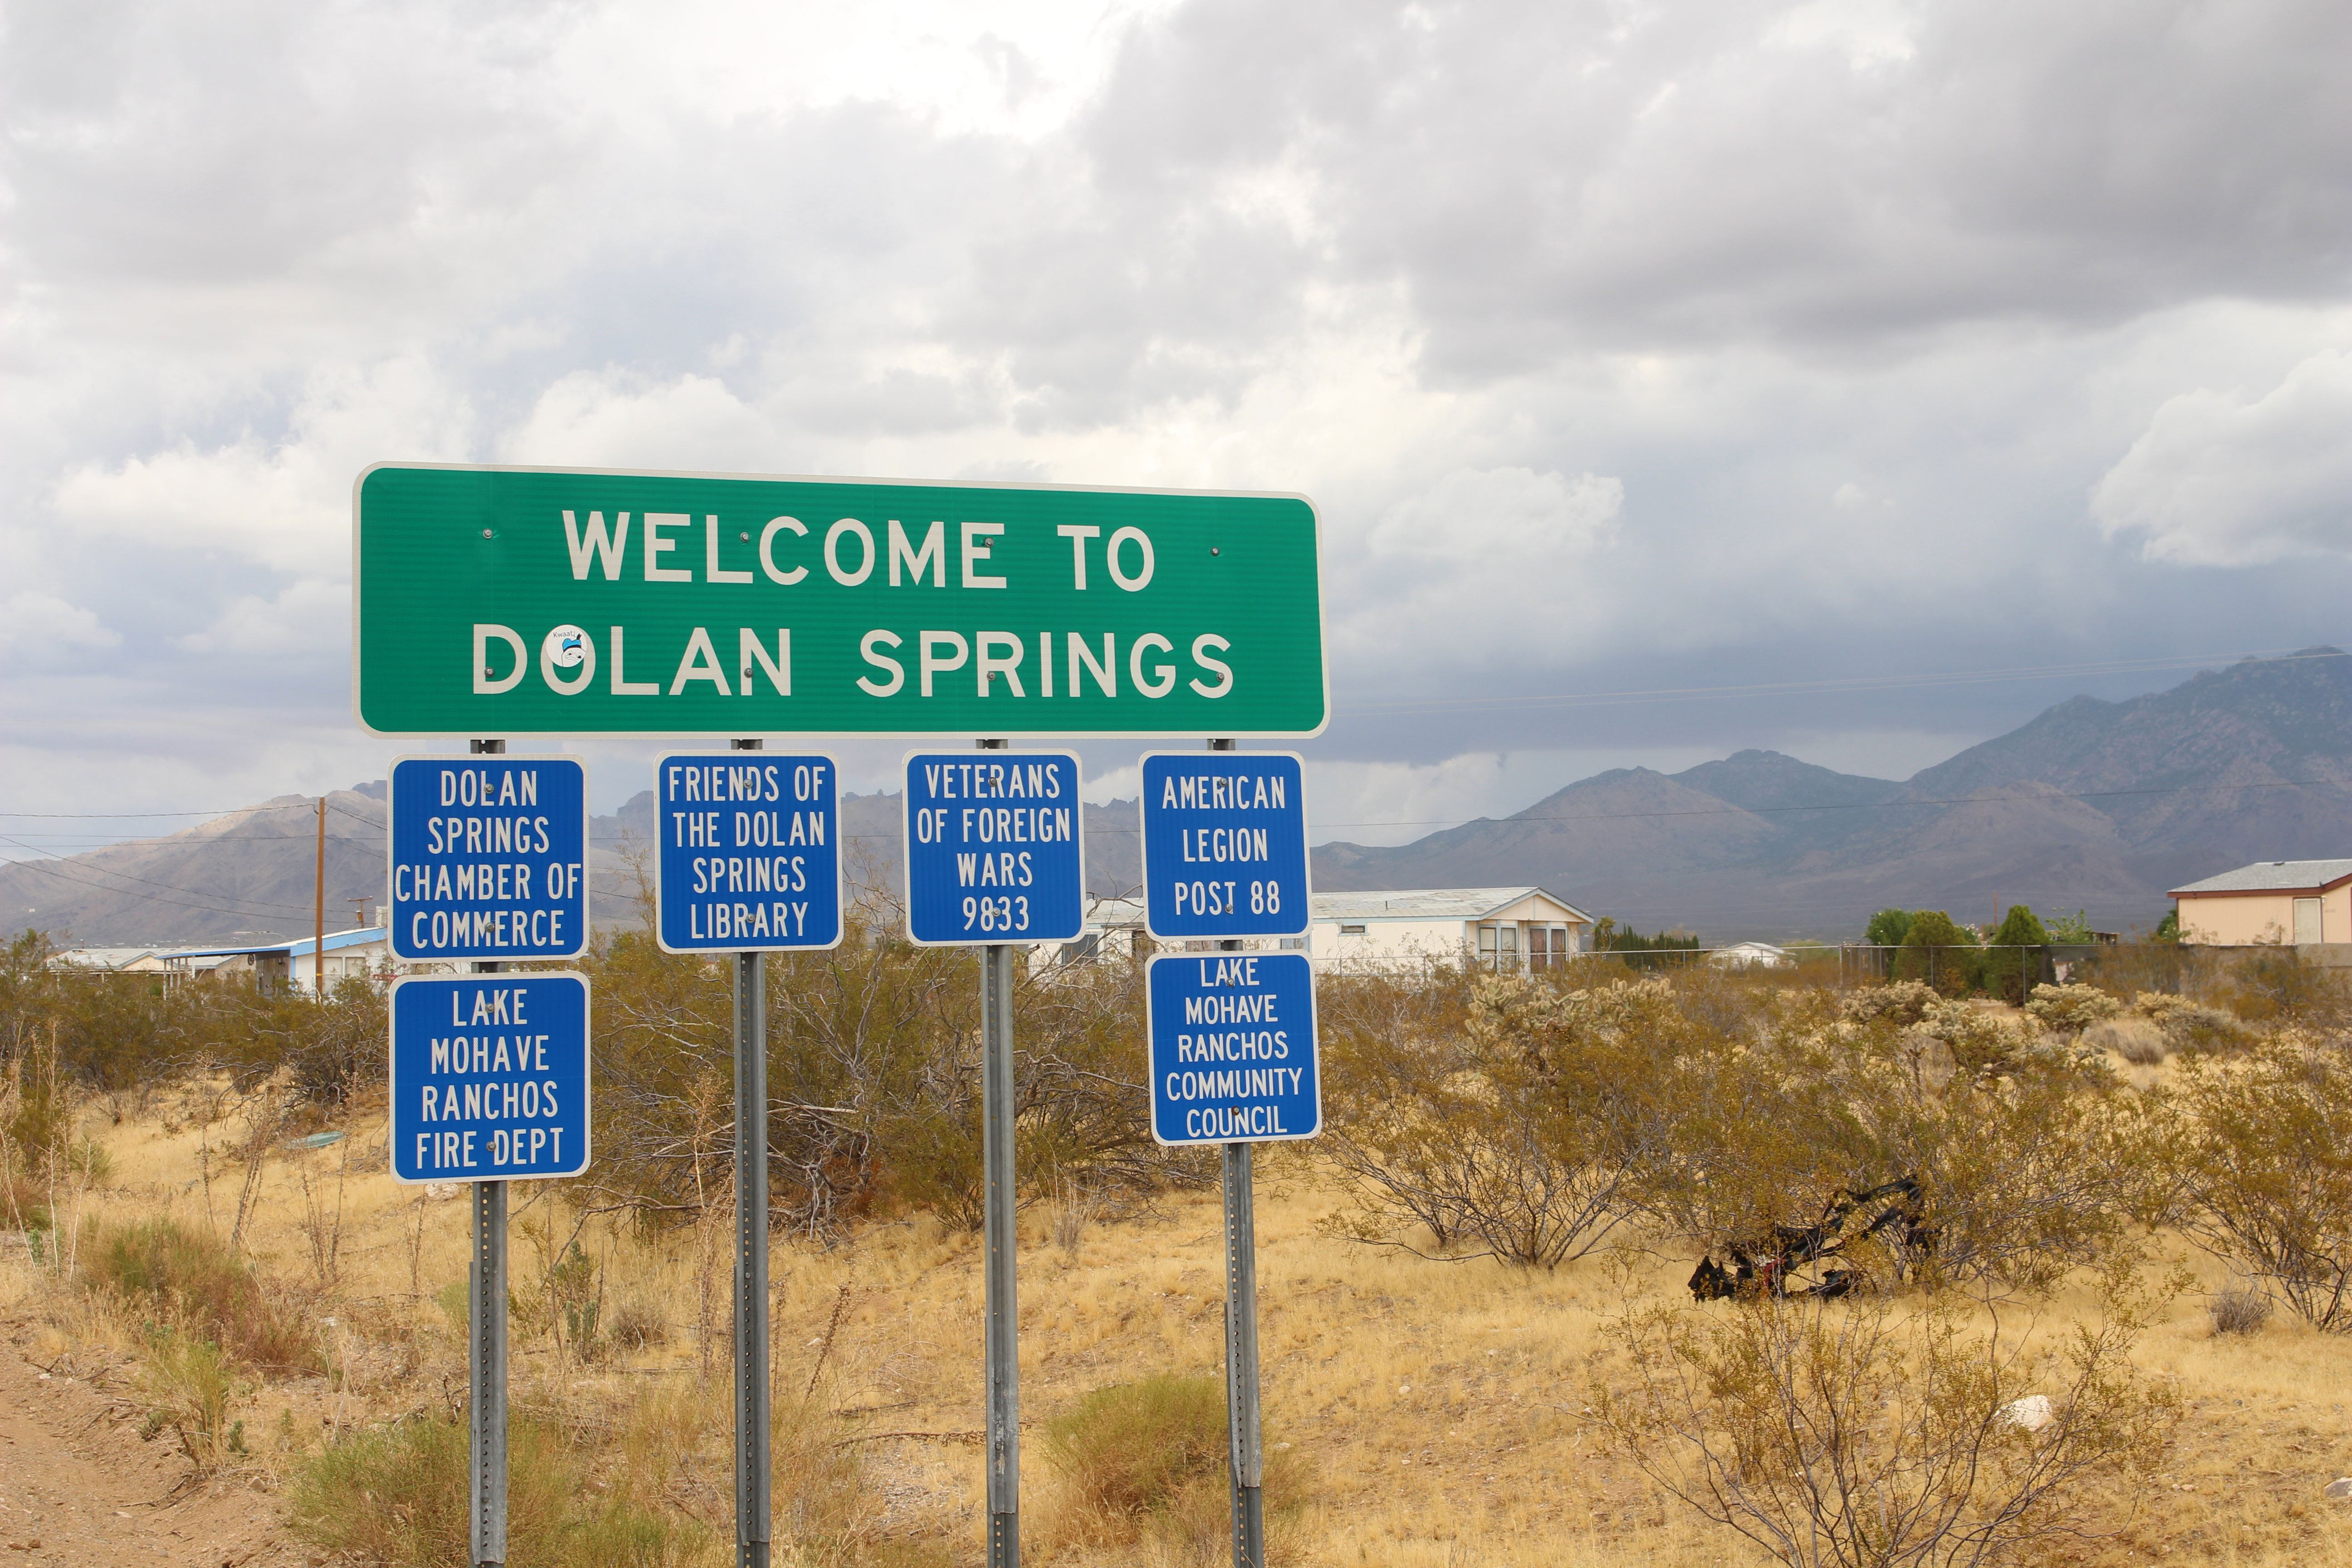 dolan springs chat rooms Dolan springs is a small and limited town with few activities a few locals operate various tours and activities but these are far from regular the best place to find out about these would be the dolan springs chamber of commerce located on the right hand side as you leave the main town.